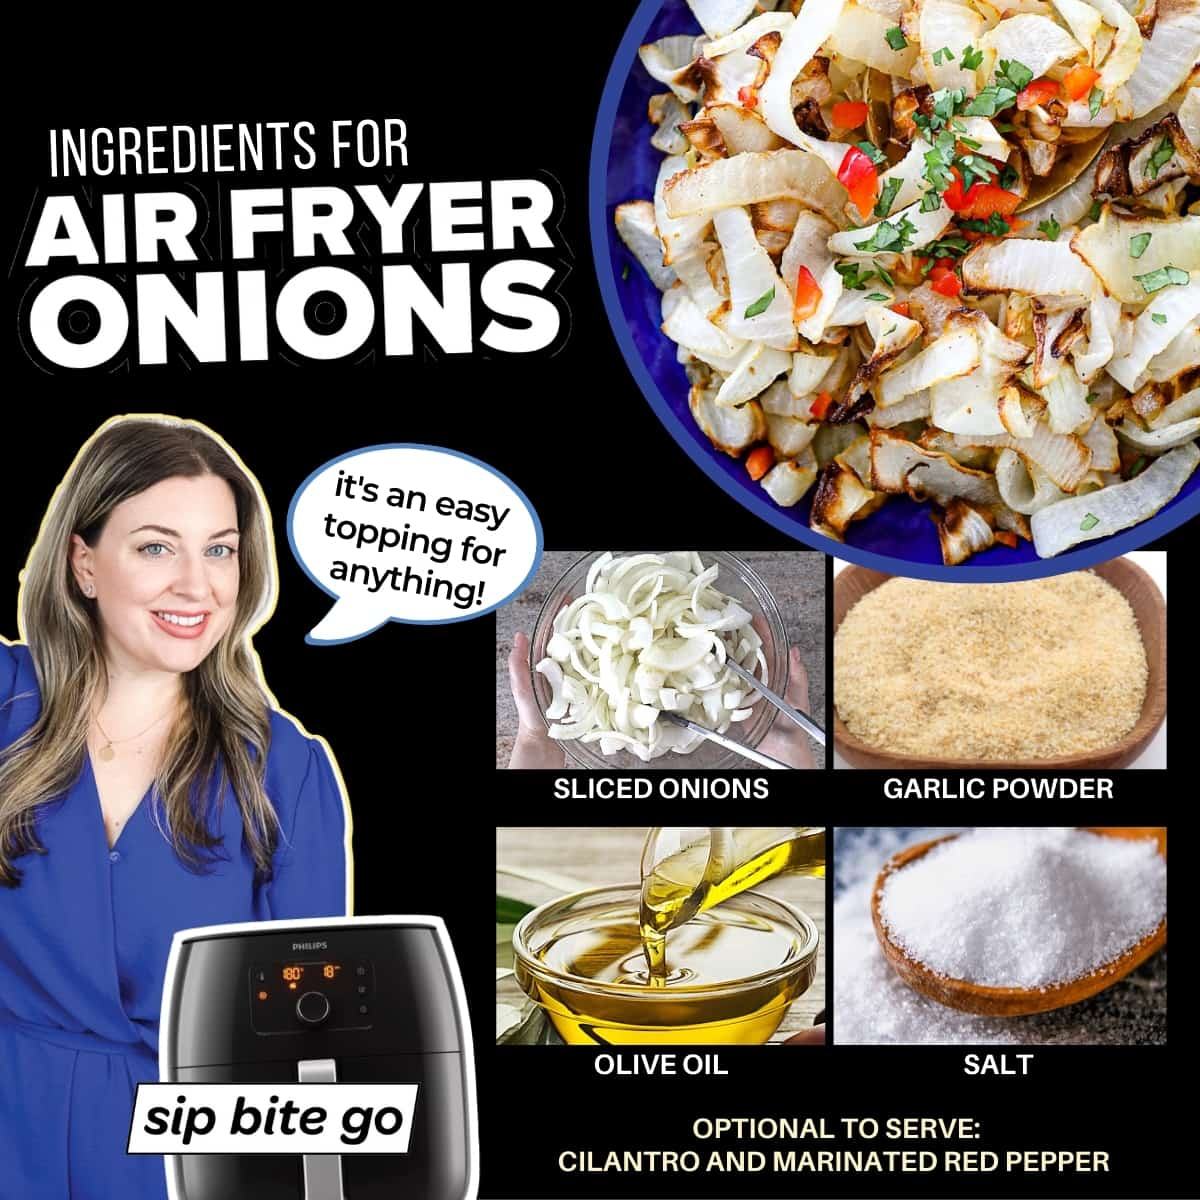 Infographic with ingredients for air fryer onions